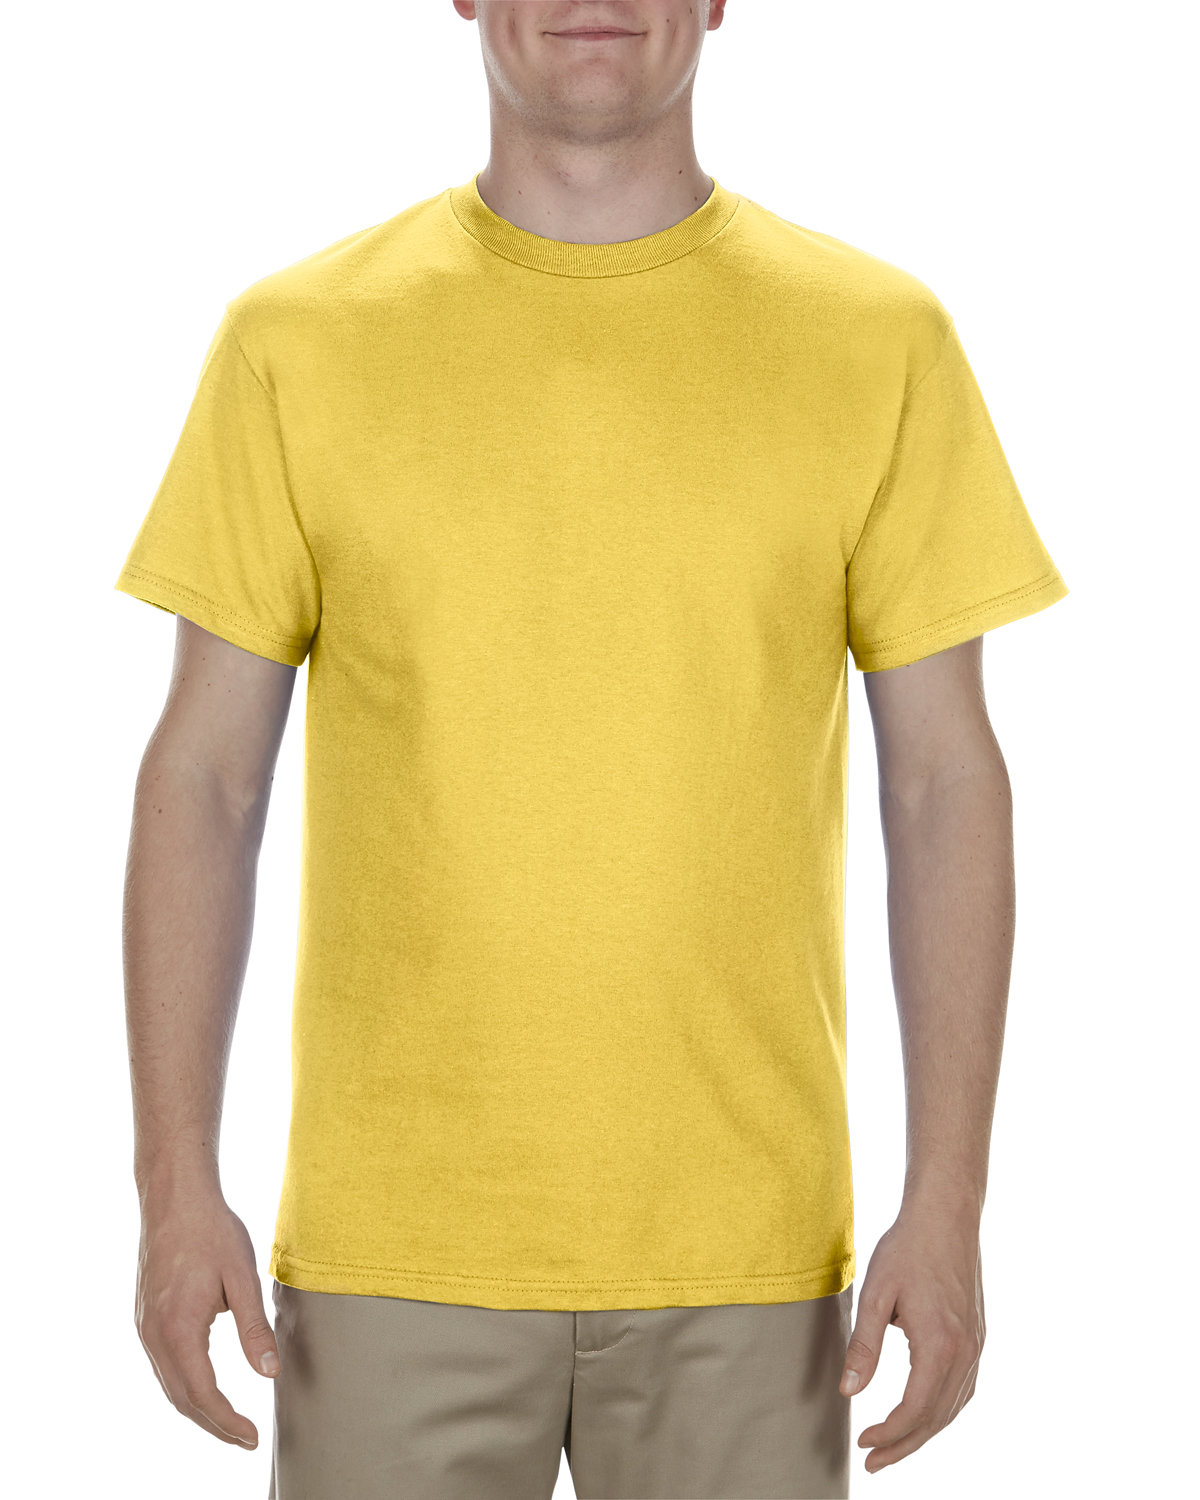 Alstyle Adult 5.1 oz., 100% Cotton T-Shirt YELLOW